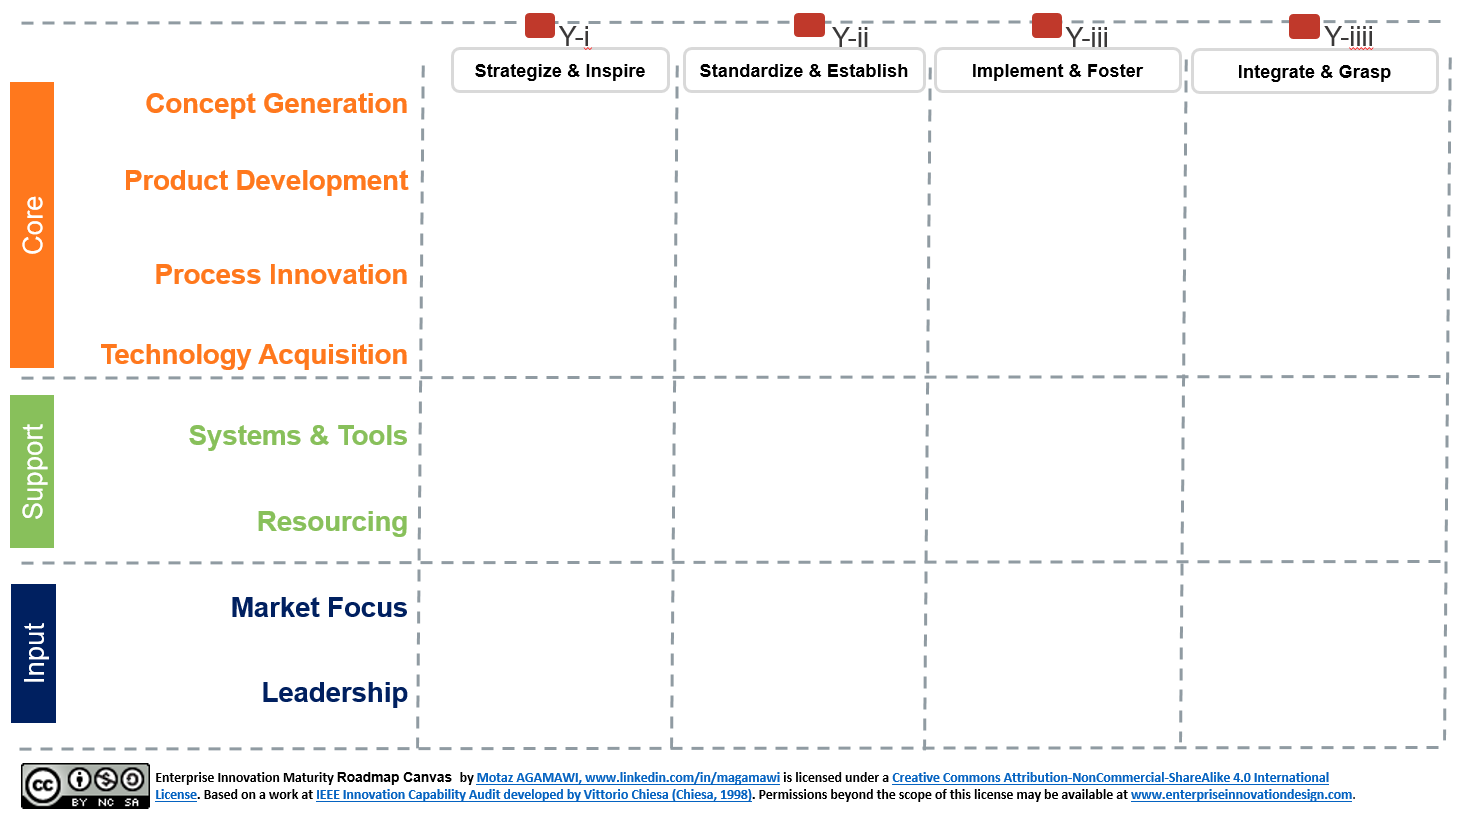 Enterprise Innovation Maturity Road map Canvas | The Innovative